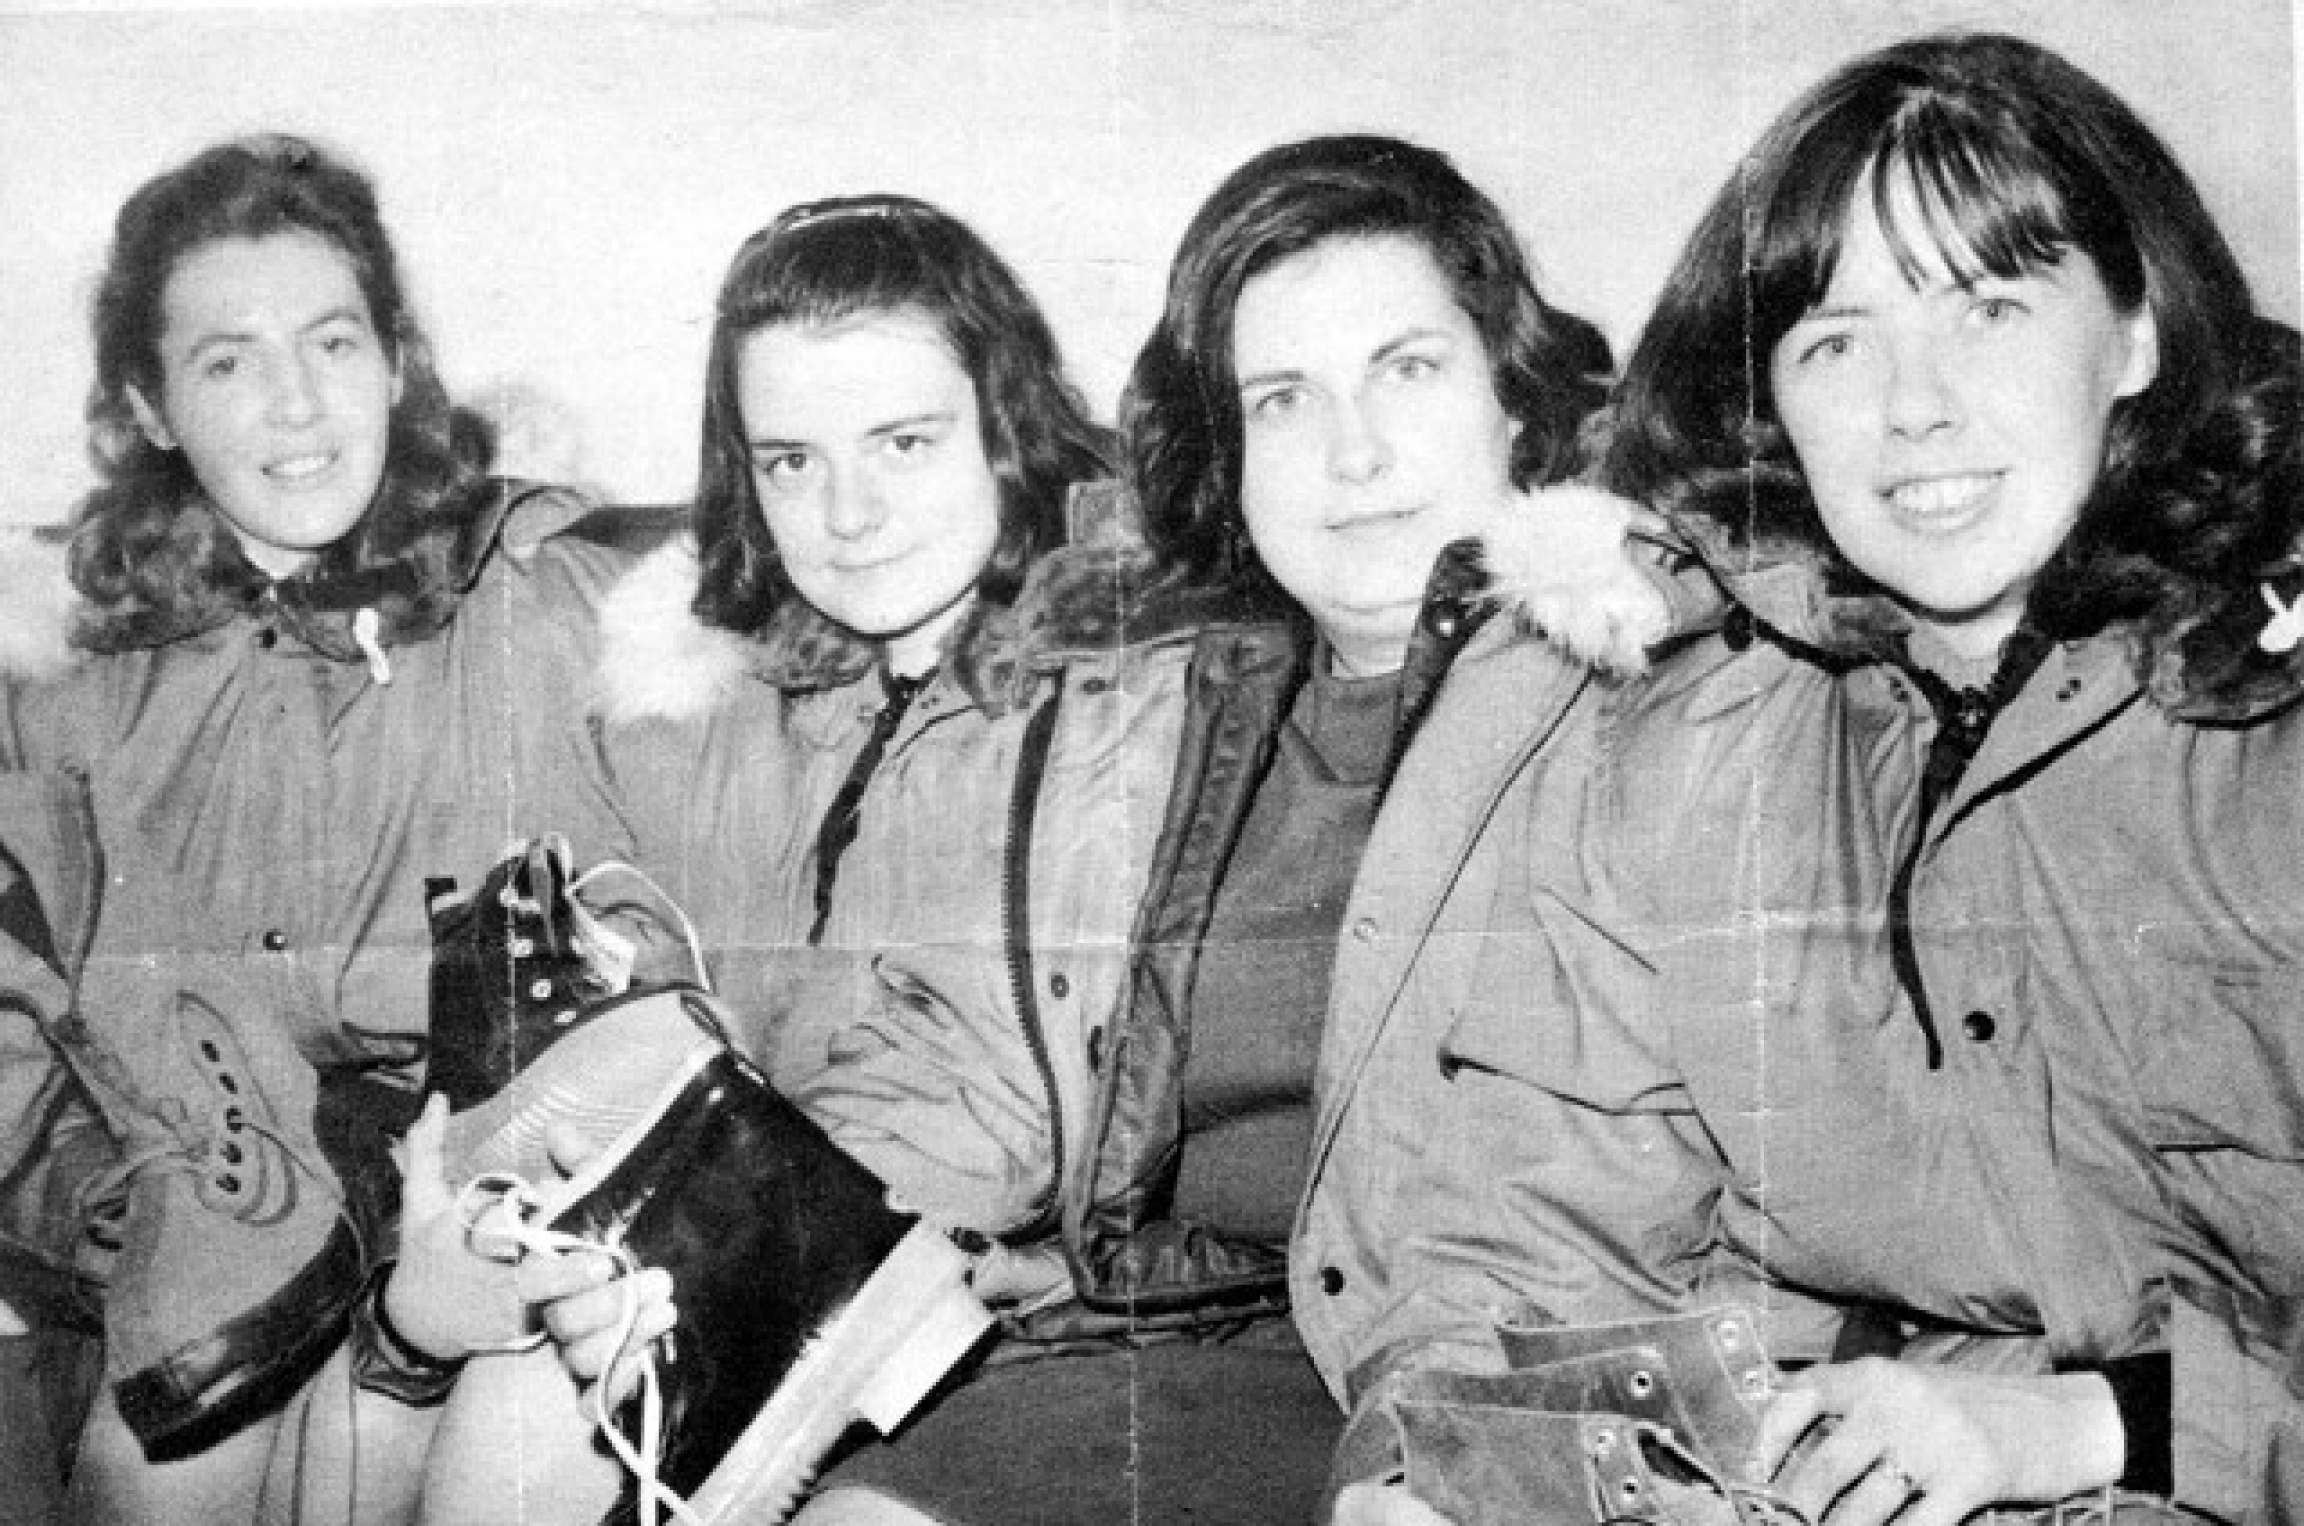 Four women pose for a photo in winter gear.